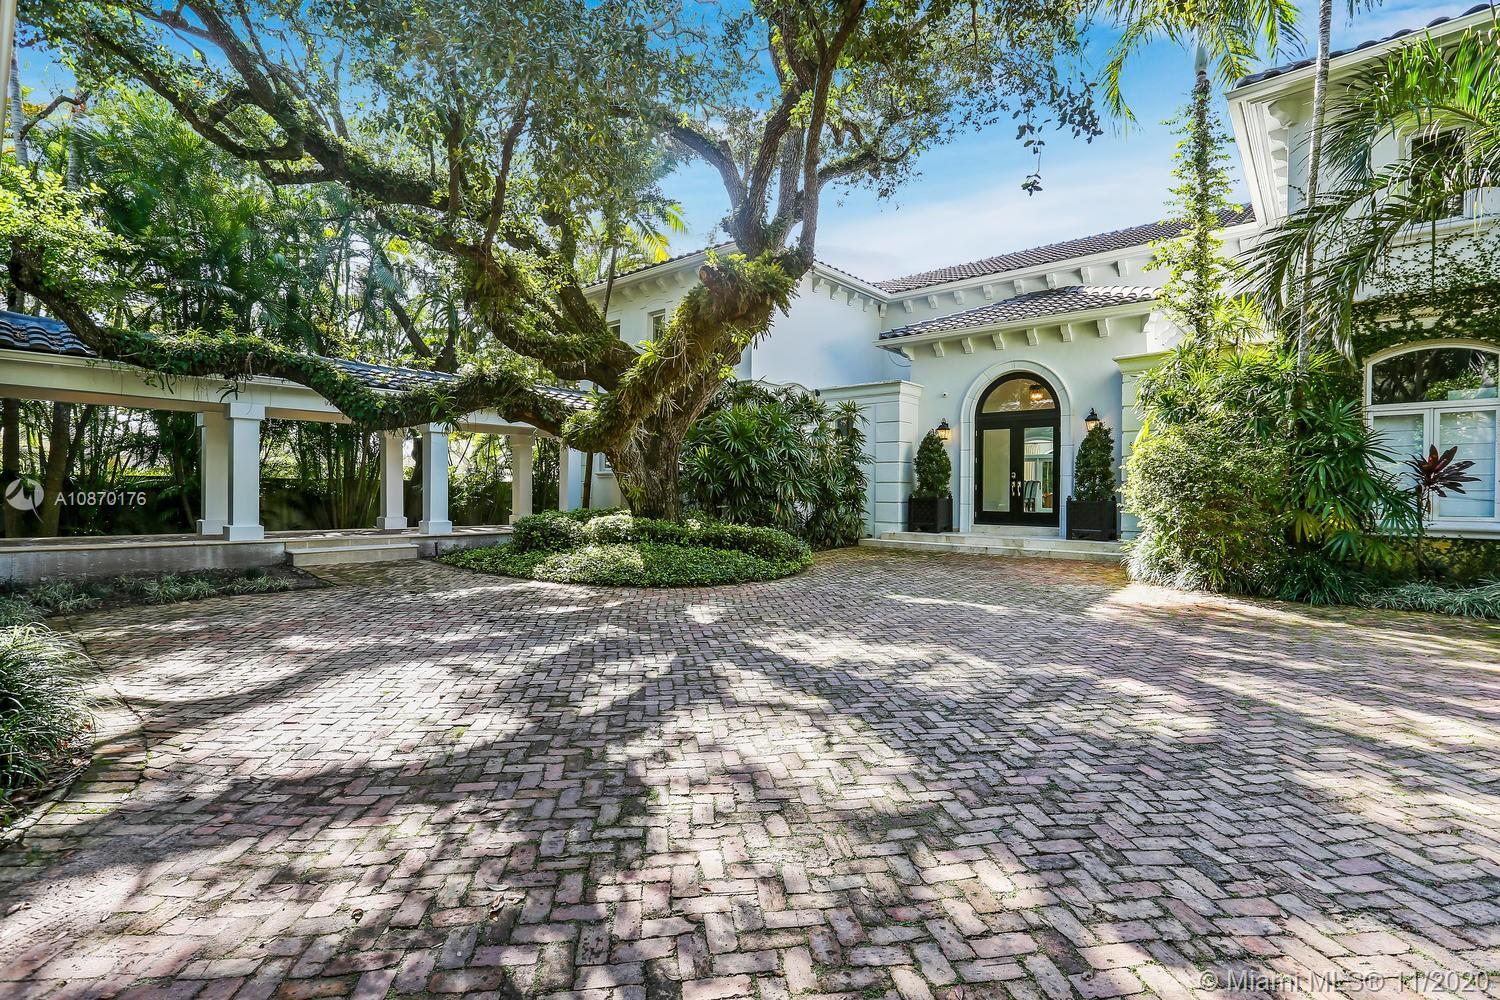 5770 SW 100th St, Pinecrest, Florida 33156, 5 Bedrooms Bedrooms, ,6 BathroomsBathrooms,Residential,For Sale,5770 SW 100th St,A10870176